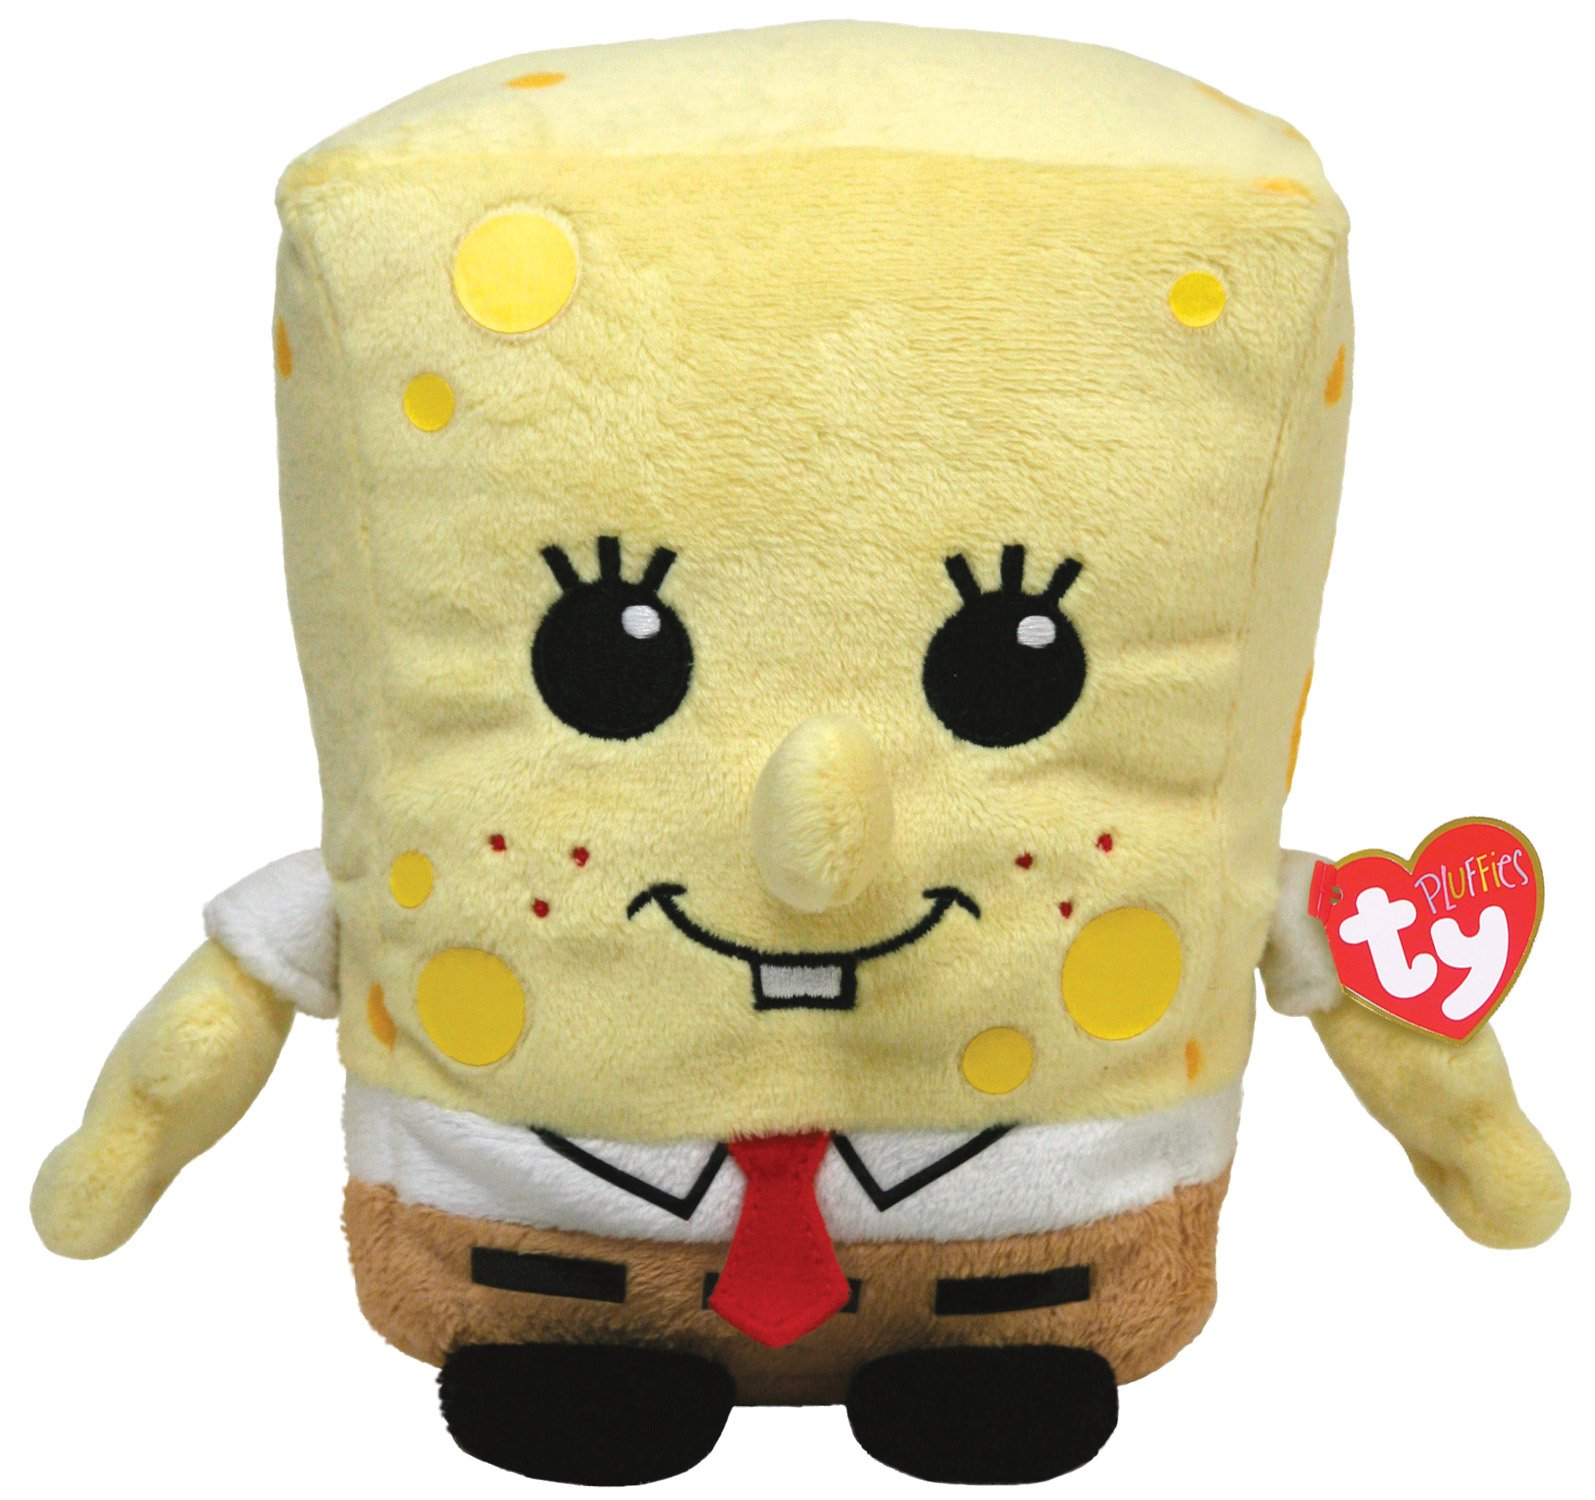 Ty Pluffies Spongebob by Nickelodeon